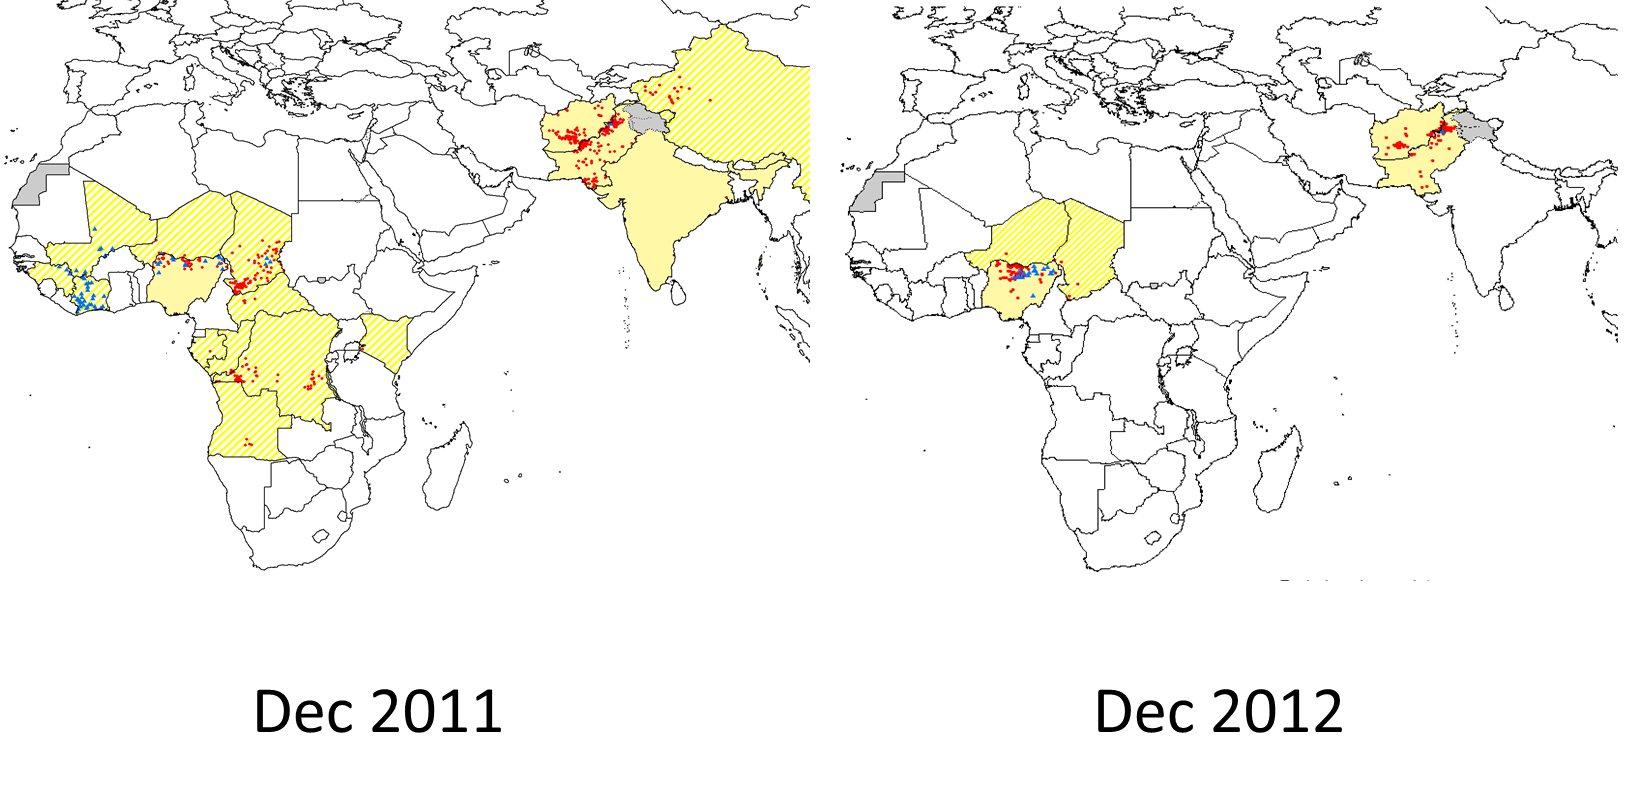 Polio in the world